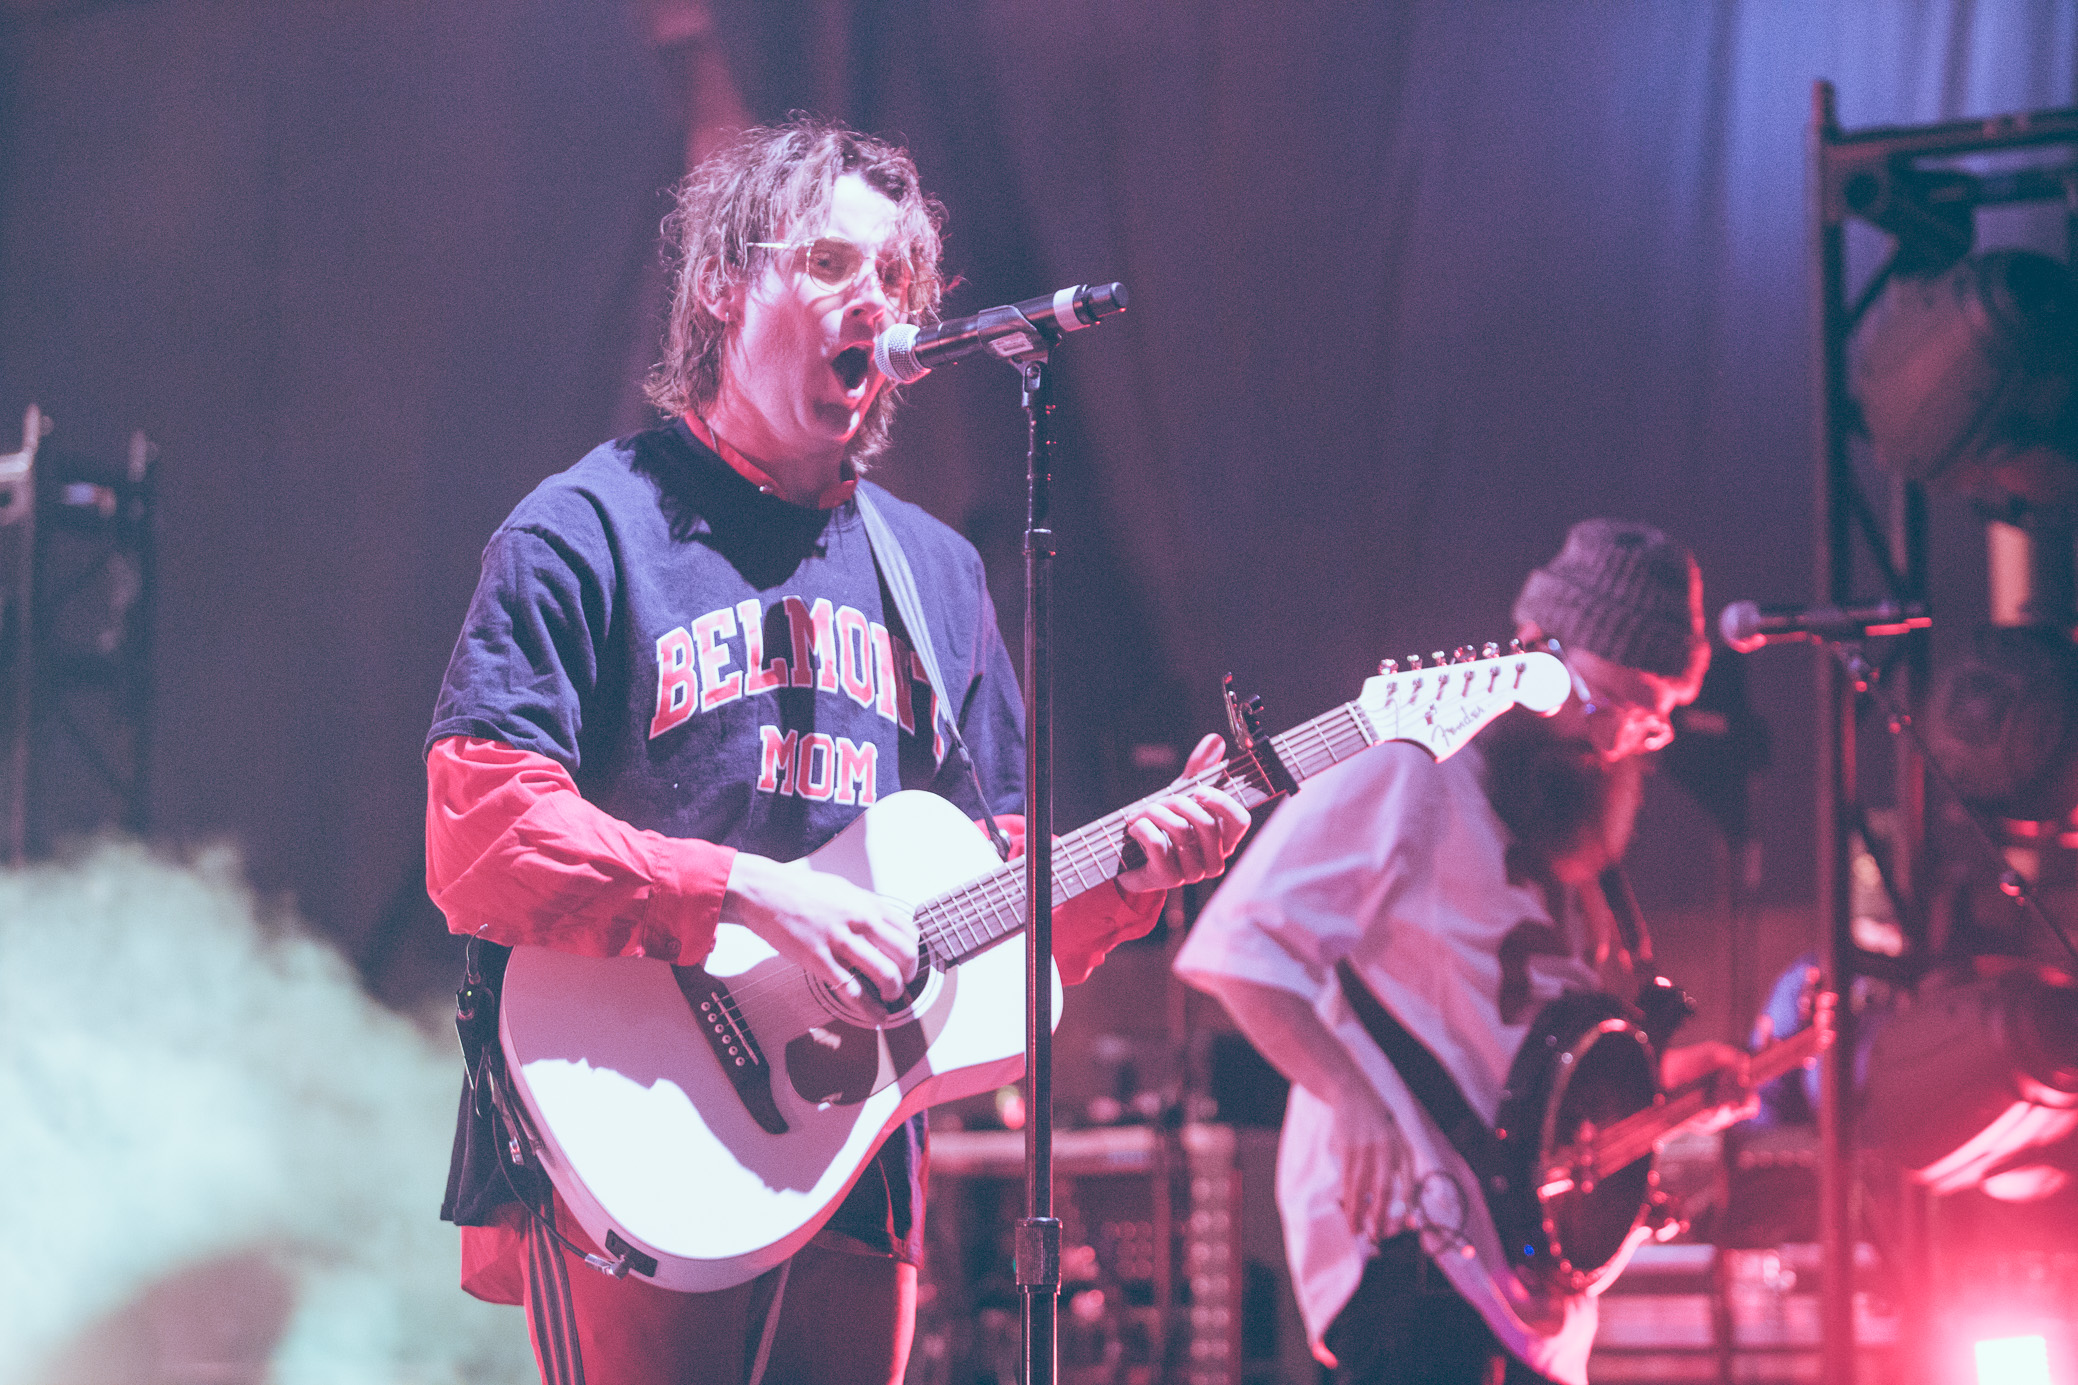 Judah & the Lion performs in concert at Sloss Furnaces in Birmingham, Alabama on April 19th, 2018. (Photo by David A. Smith/DSmithScenes)